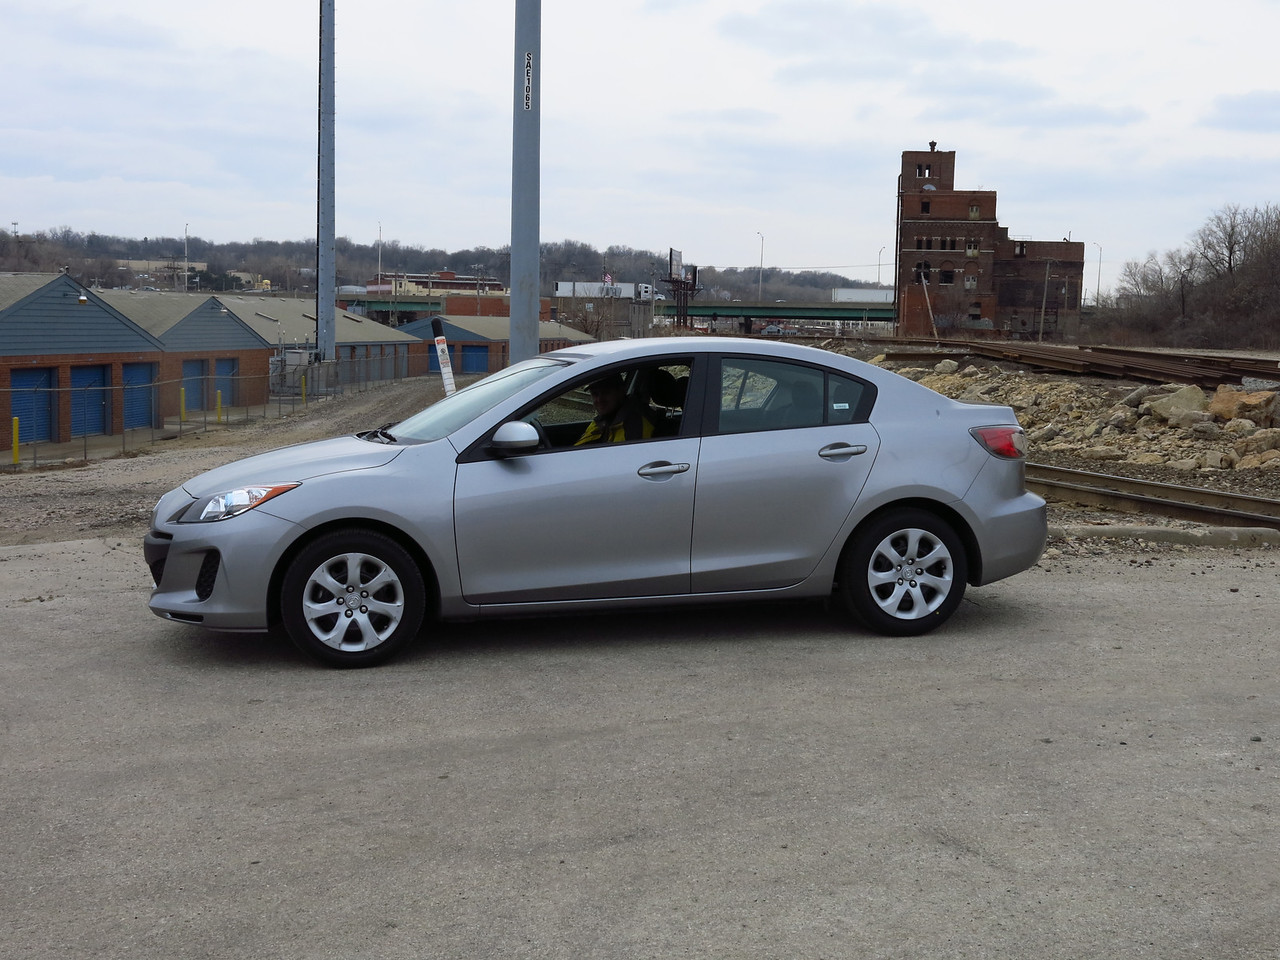 We took a little tour of Kansas City on Saturday, March 16, 2013.  This is our rental car and Nathan is in the front passenger seat.